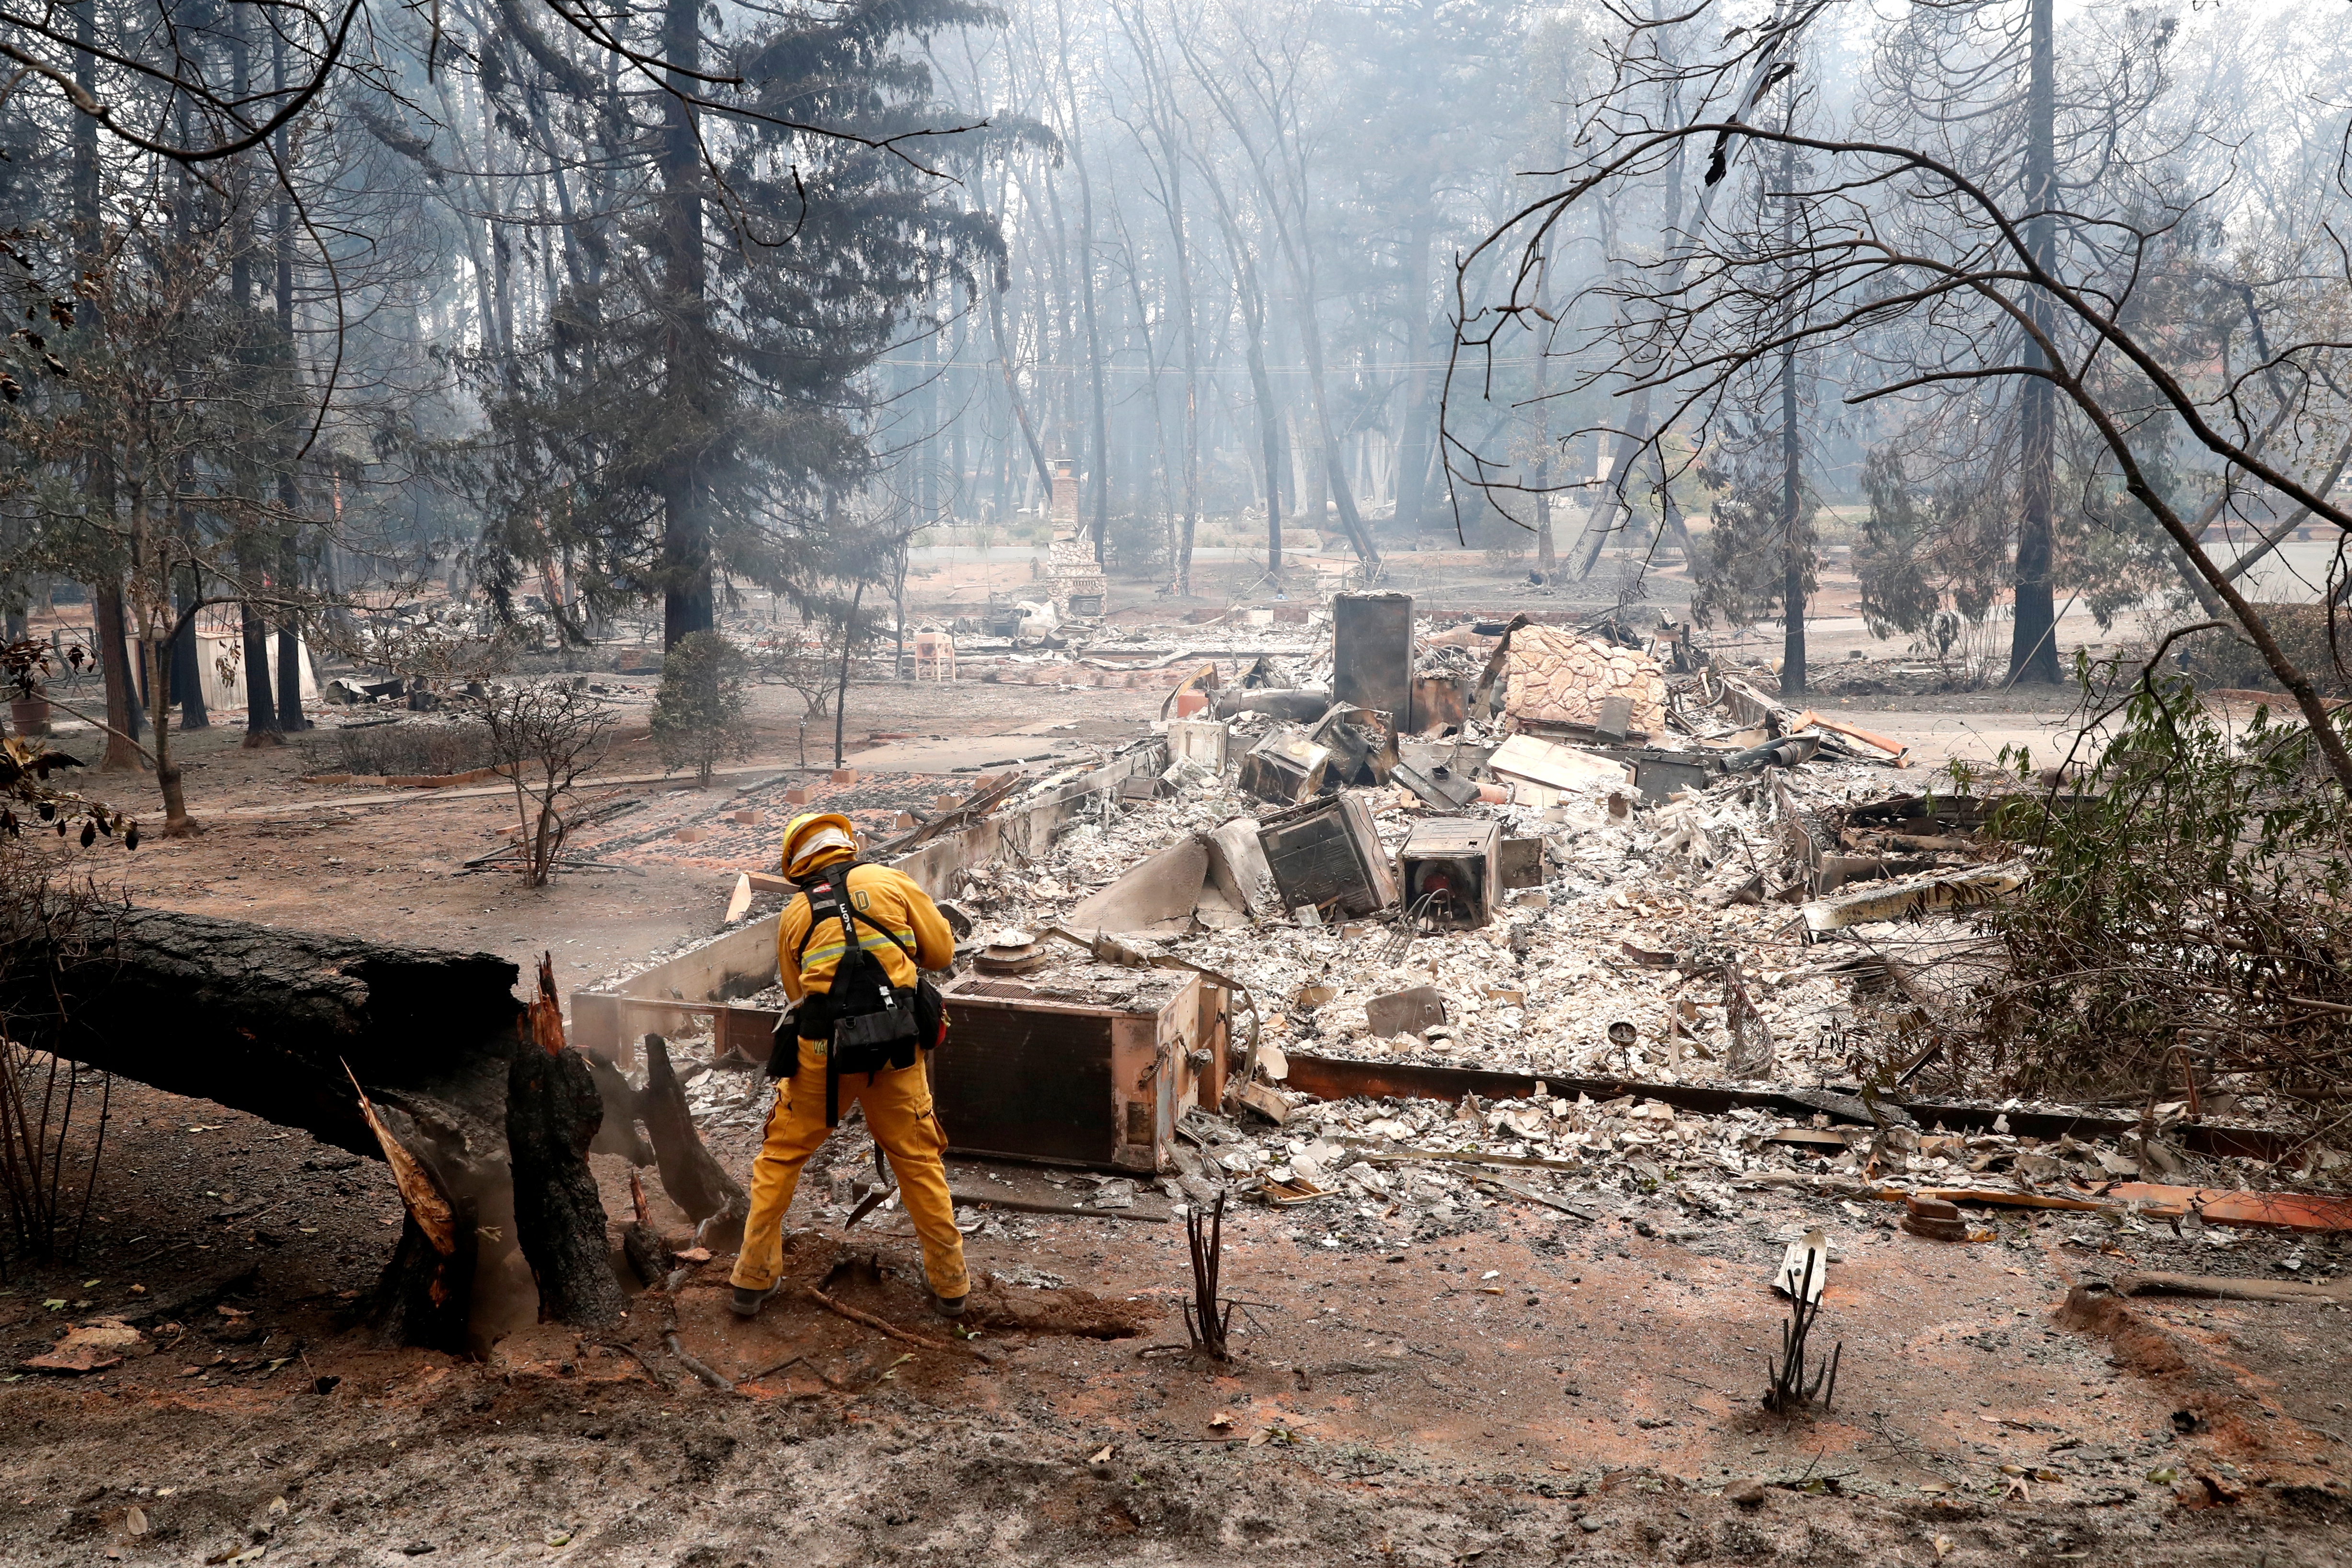 A firefighter extinguishes a hot spot in a neighbourhood destroyed by the Camp Fire in Paradise